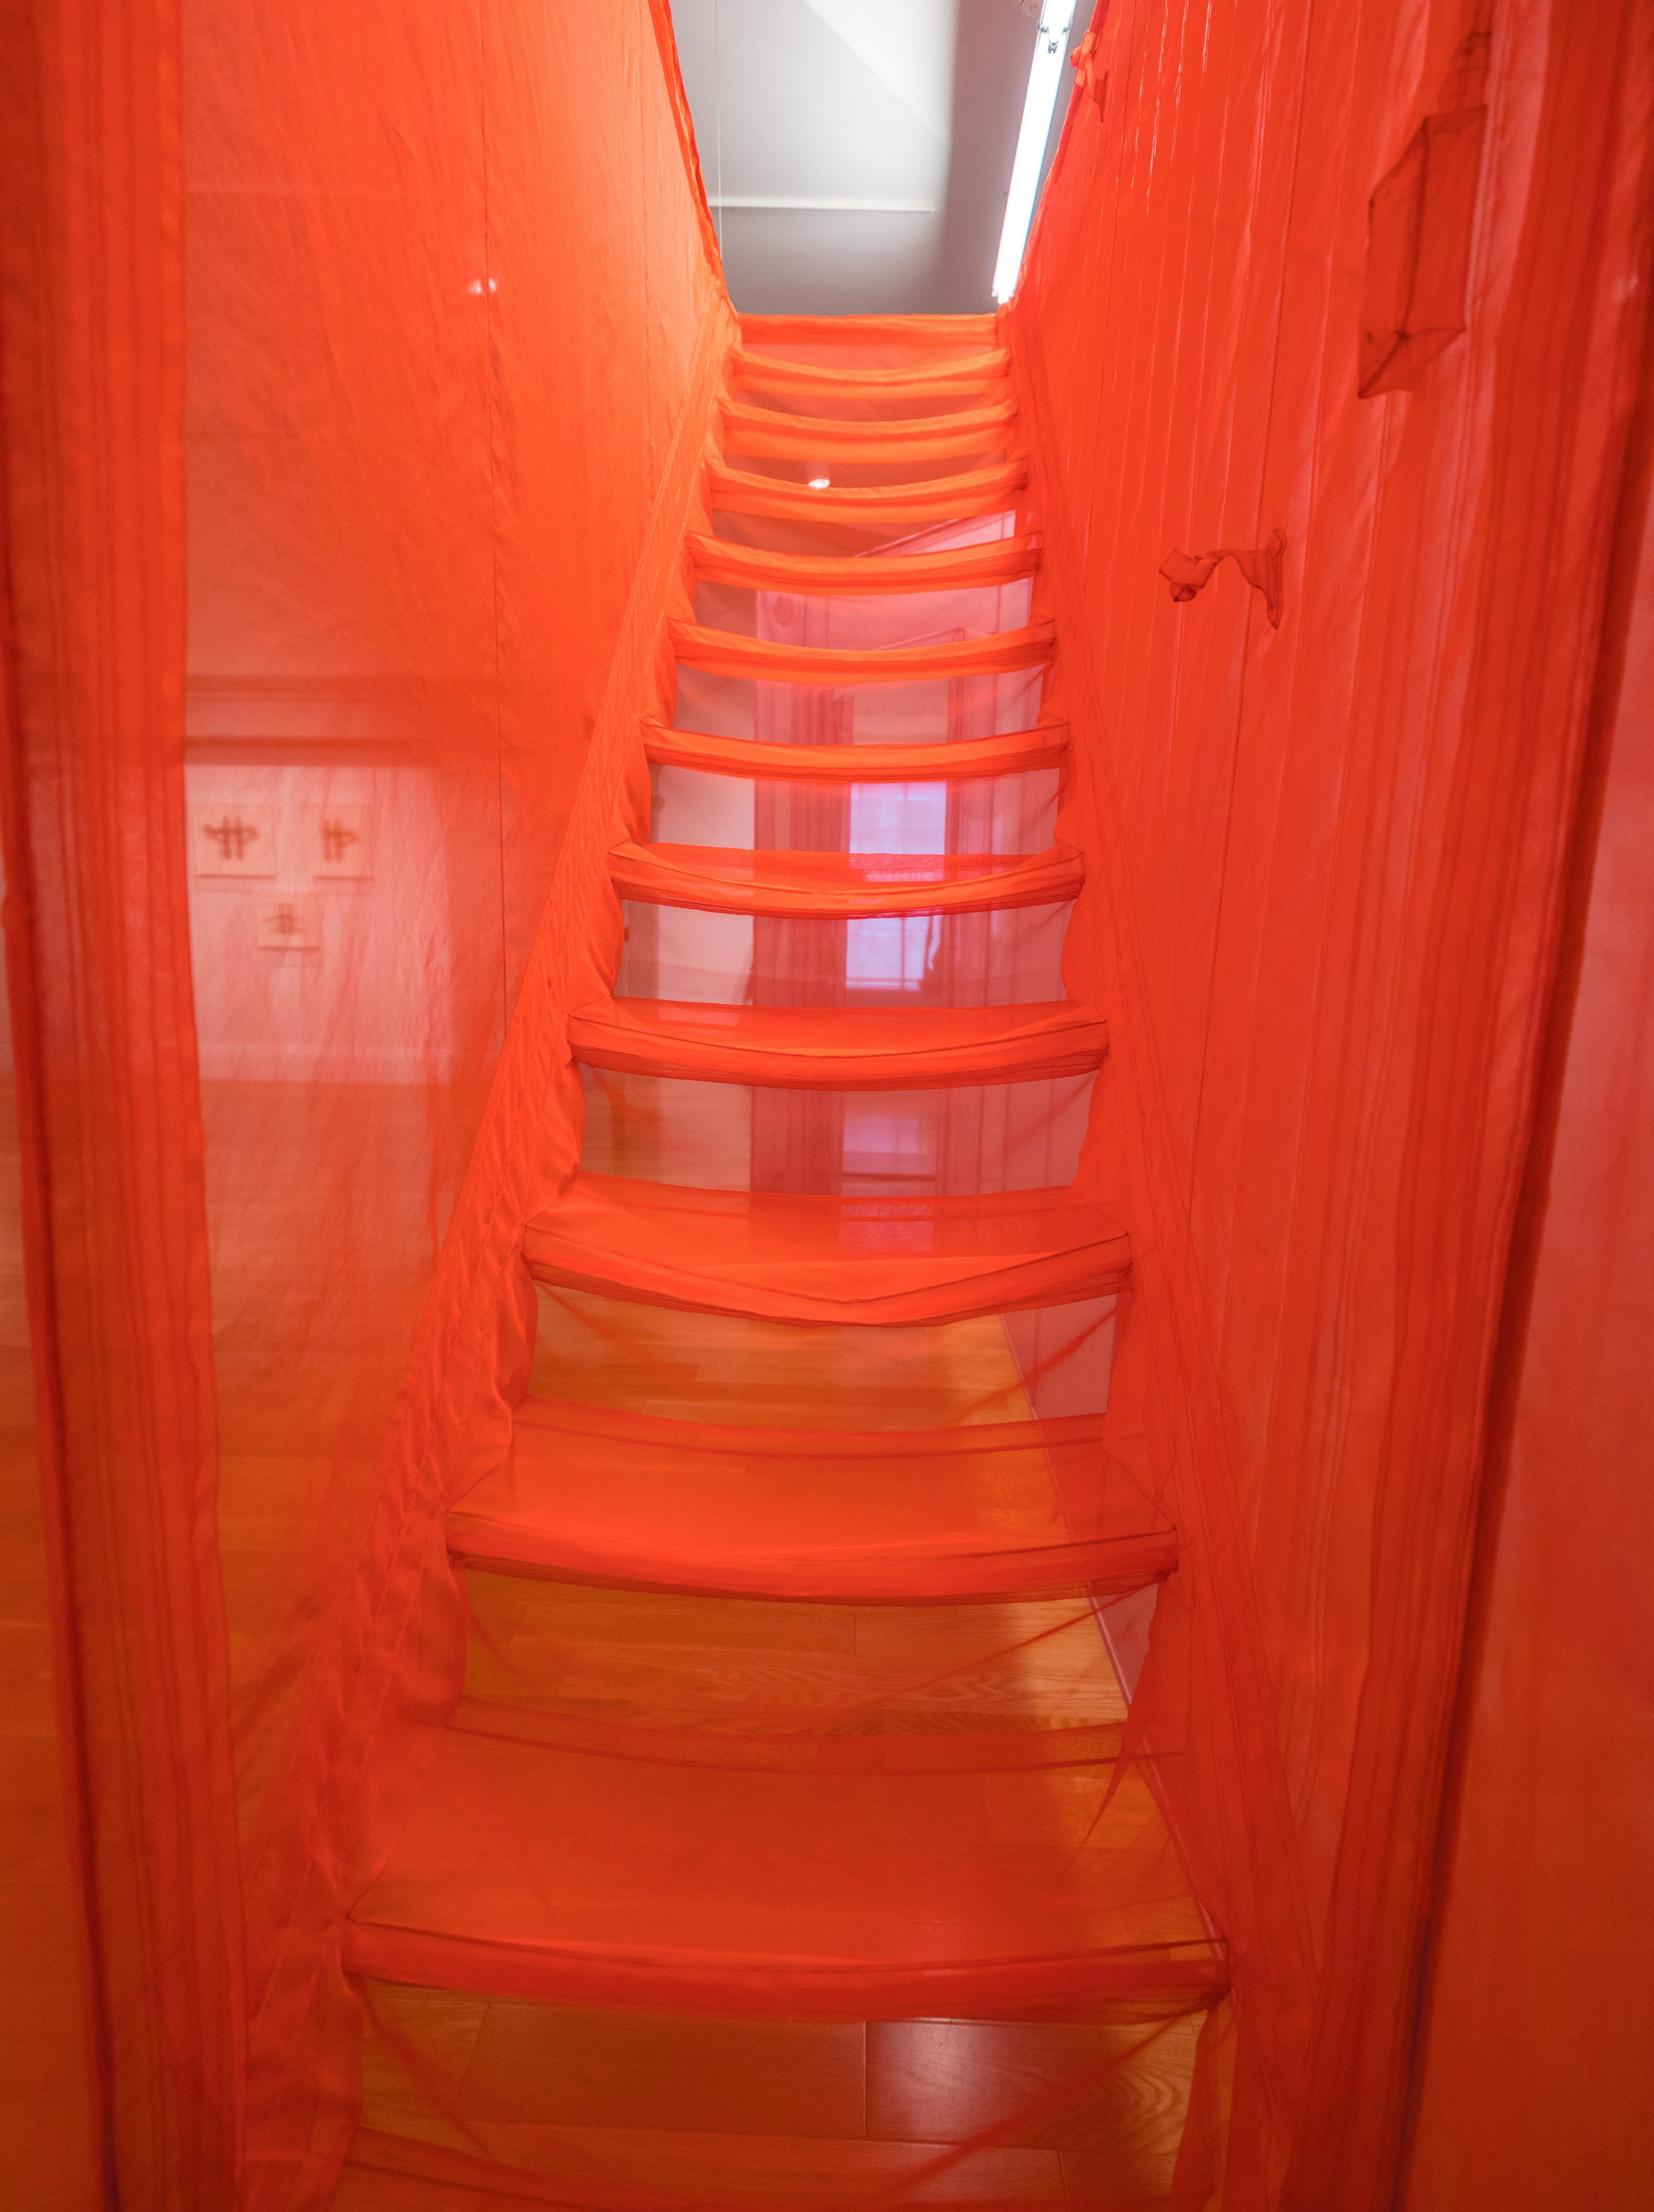 Smithsonian Saam Do Ho Suh Almost Home 6